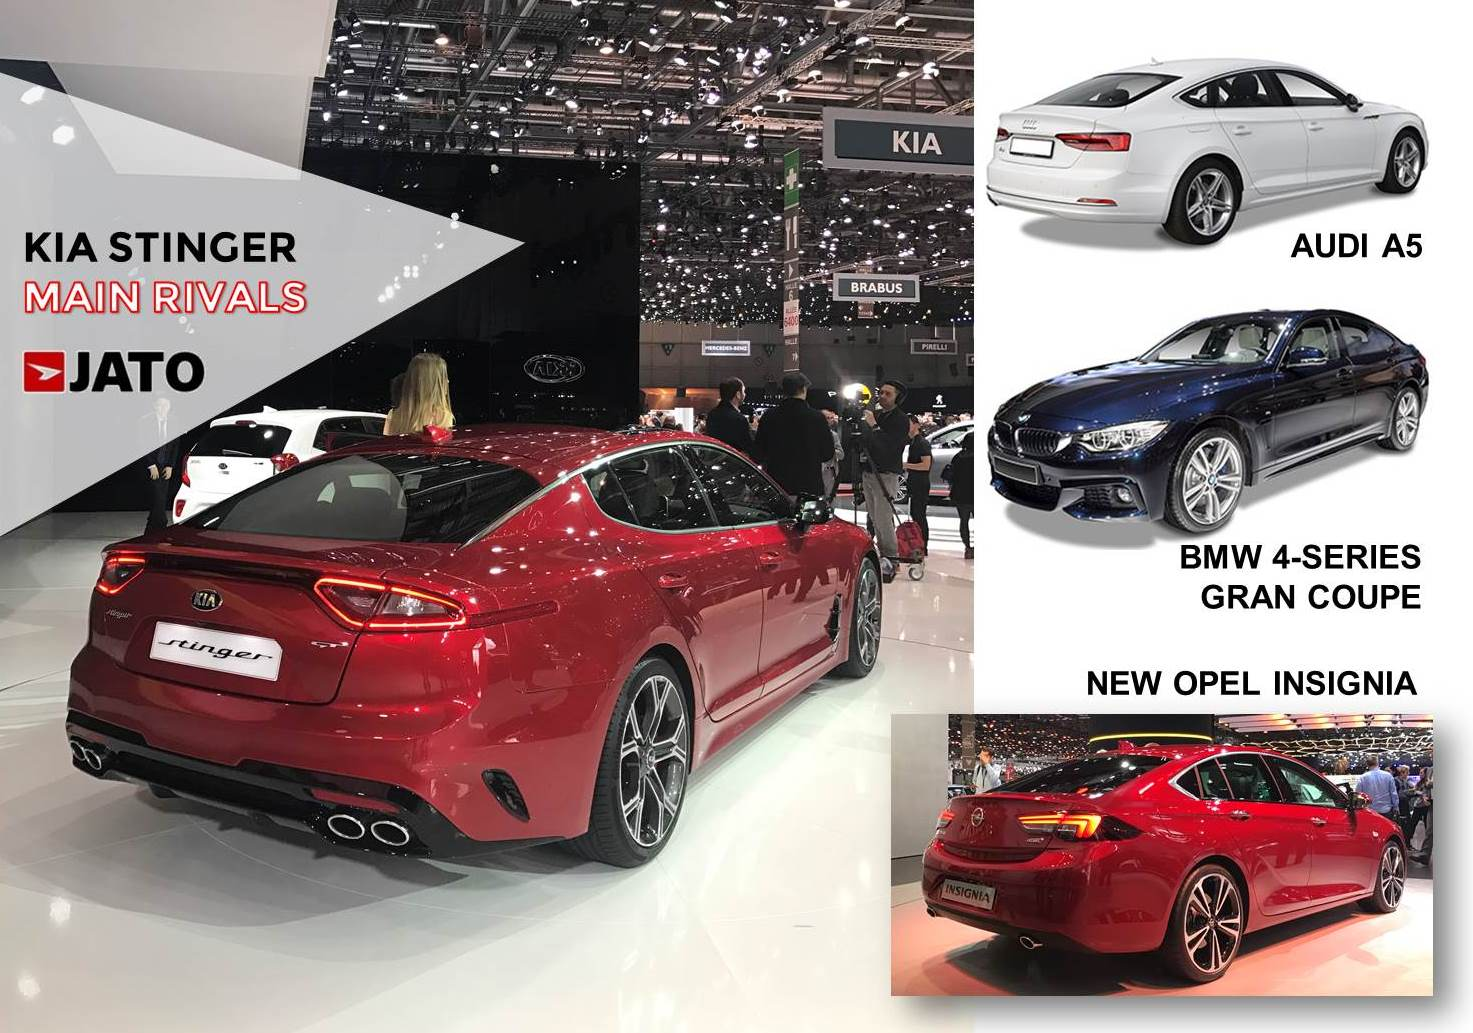 The Kia Stinger will target those consumers looking for sporty sedans, leaving the family focus to the Optima. It will have to deal with the strong premium competitors. Because of its positining and rivals, the Stinger is not expected to post big numbers.